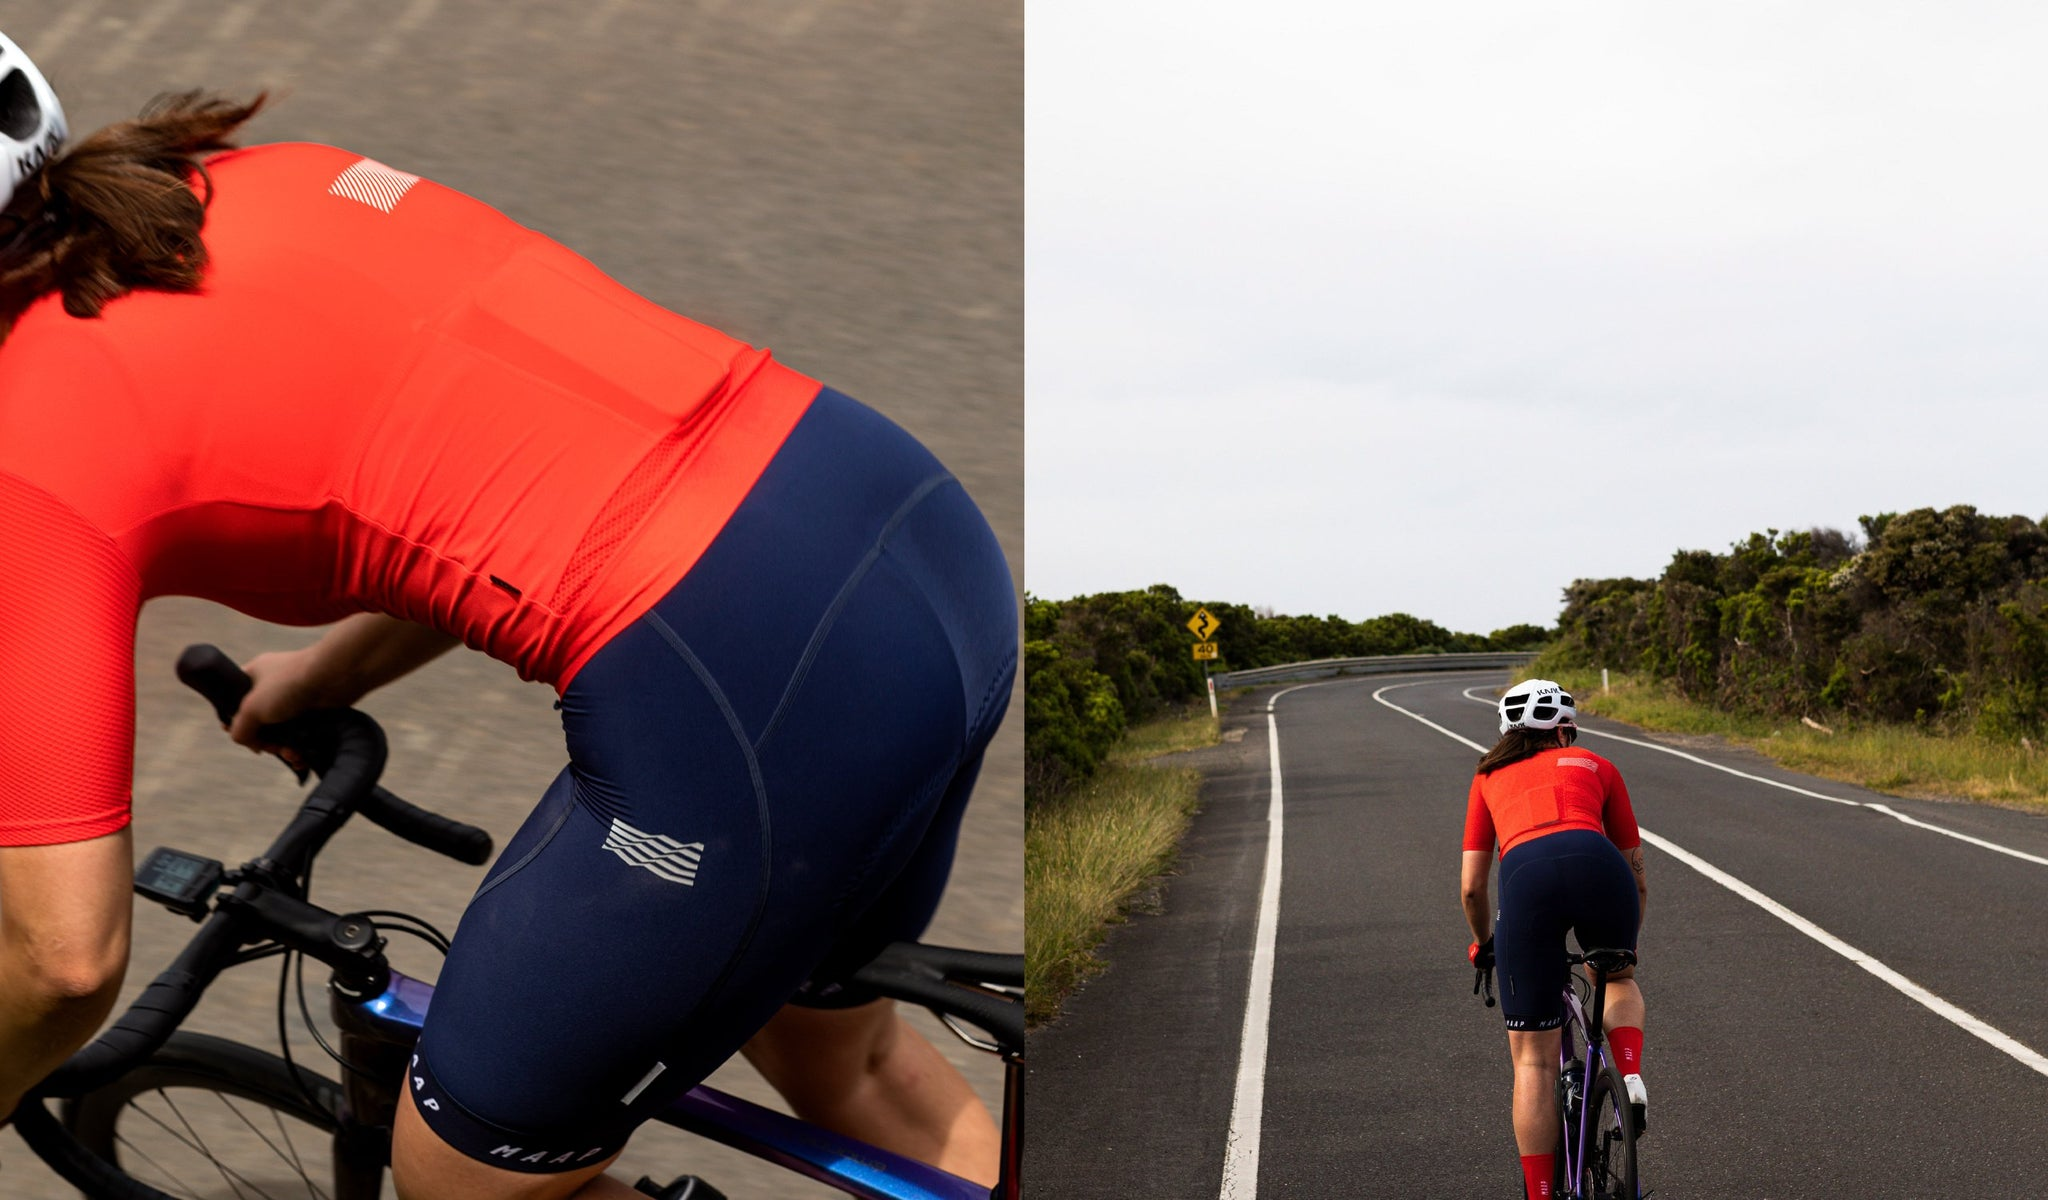 MAAP Women's Echo Pro Base Cycling Jersey in Chilli for riding for warm weather conditions.